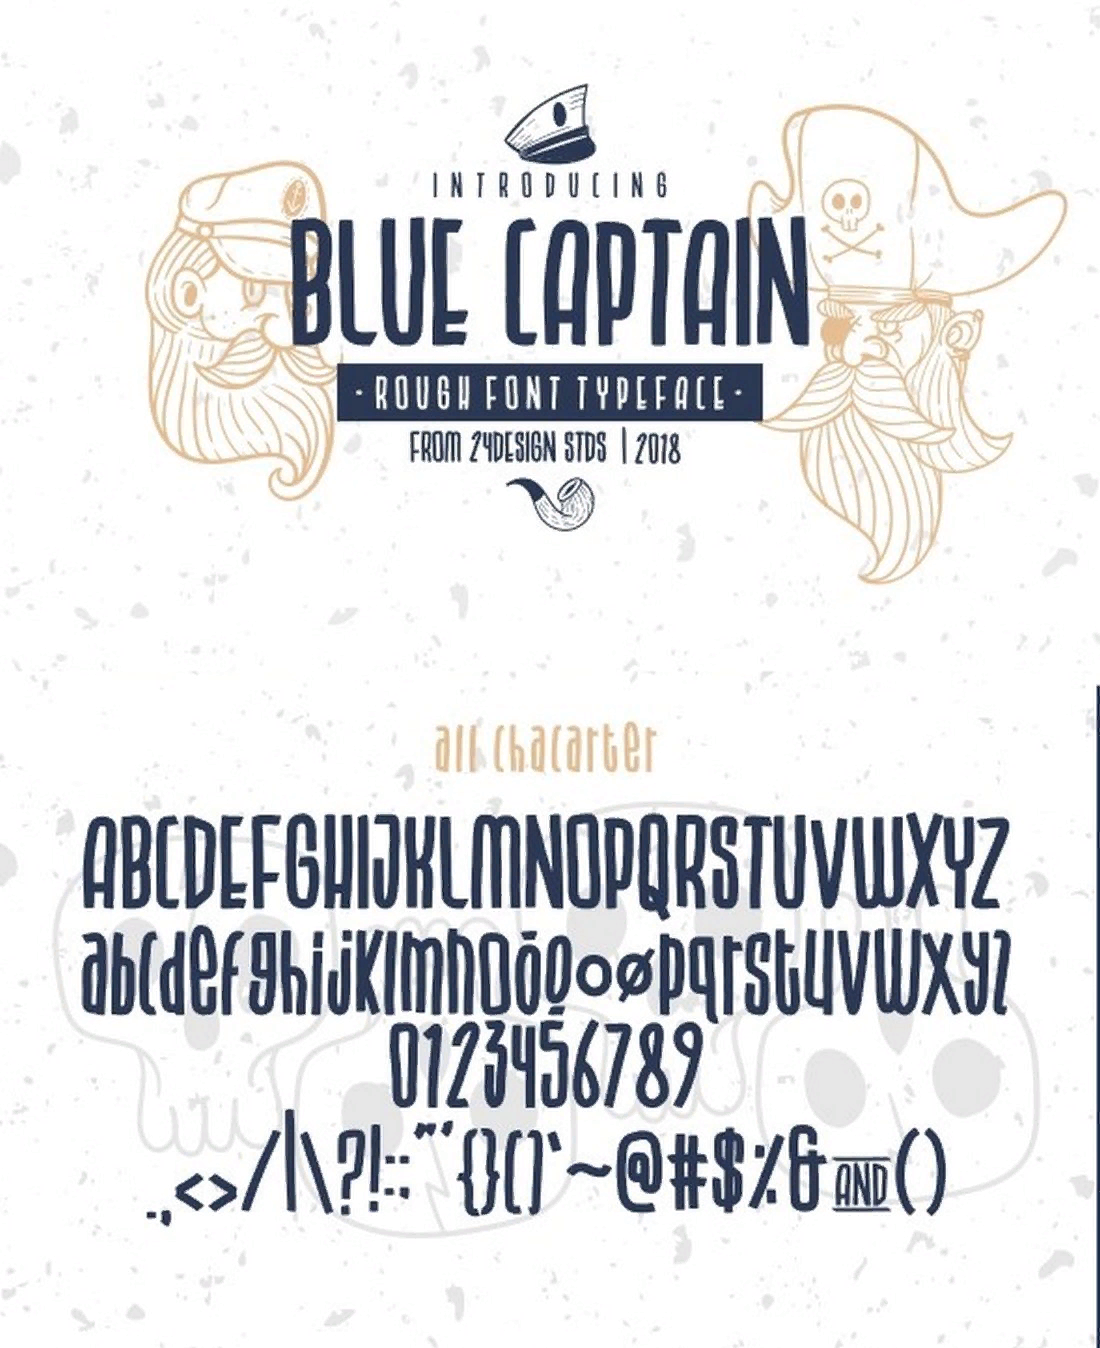 Blue Captain